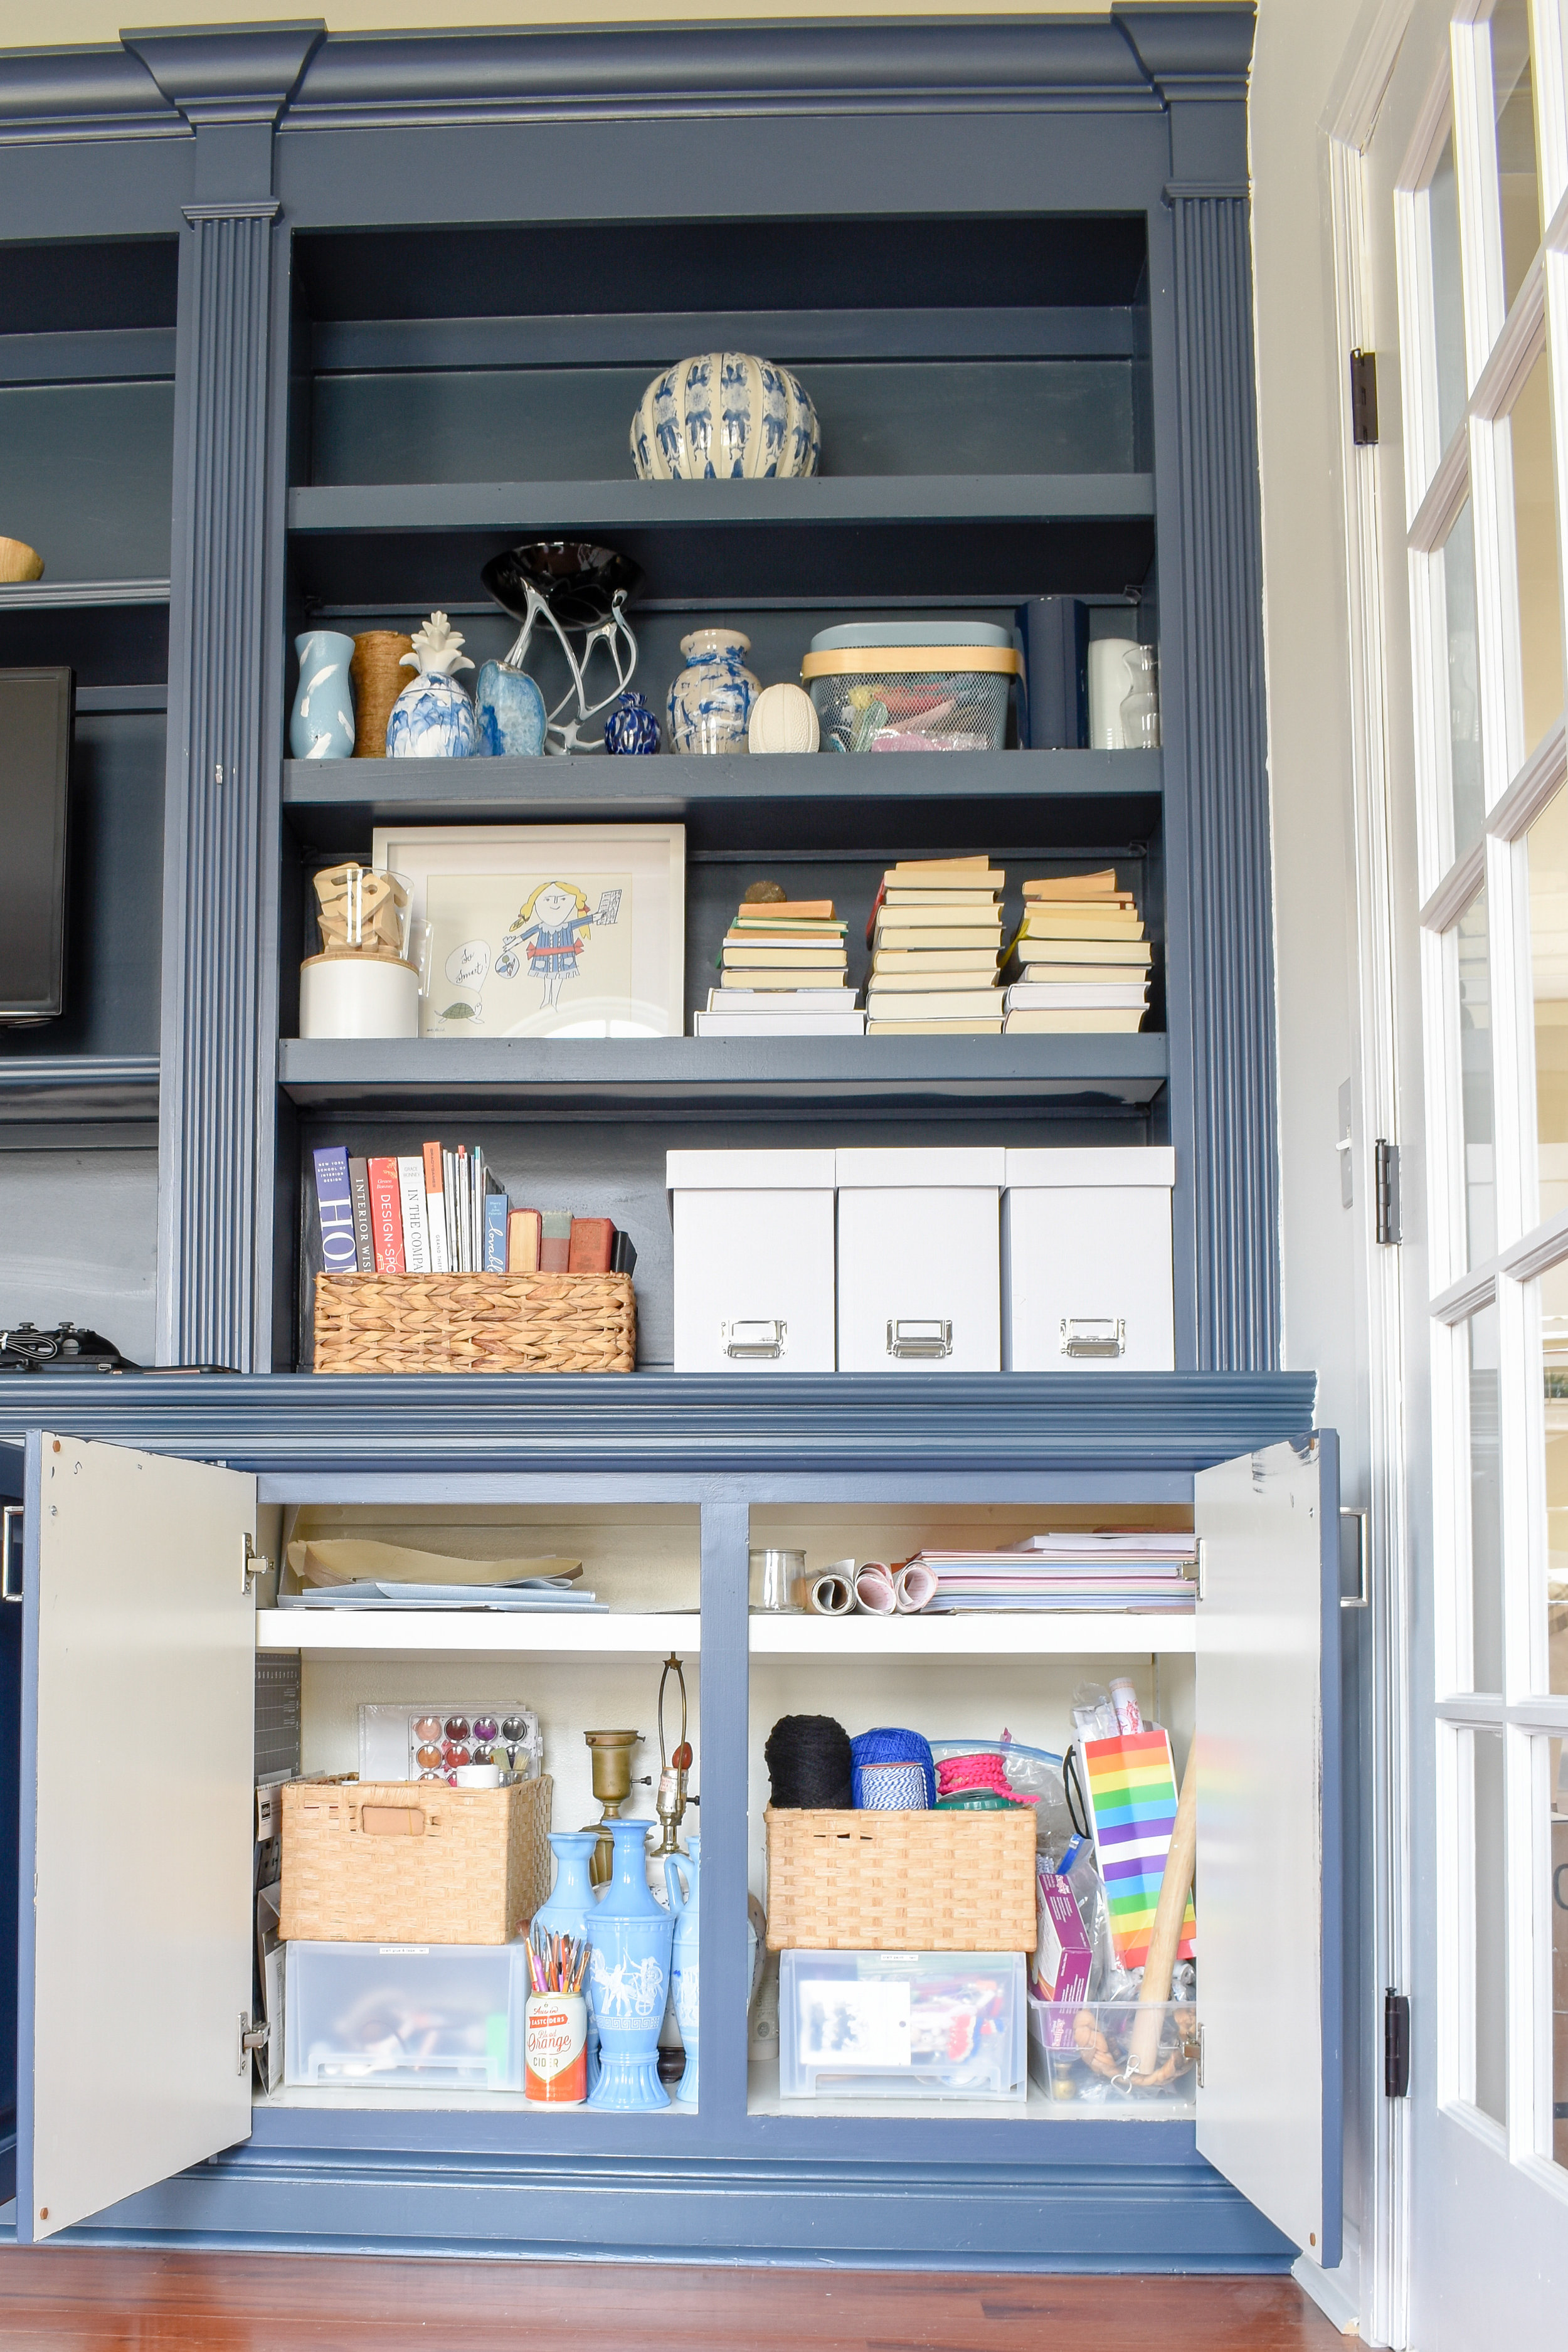 Home Office Storage Ideas - I display my shop's inventory in open shelving that's easy to access and charming.